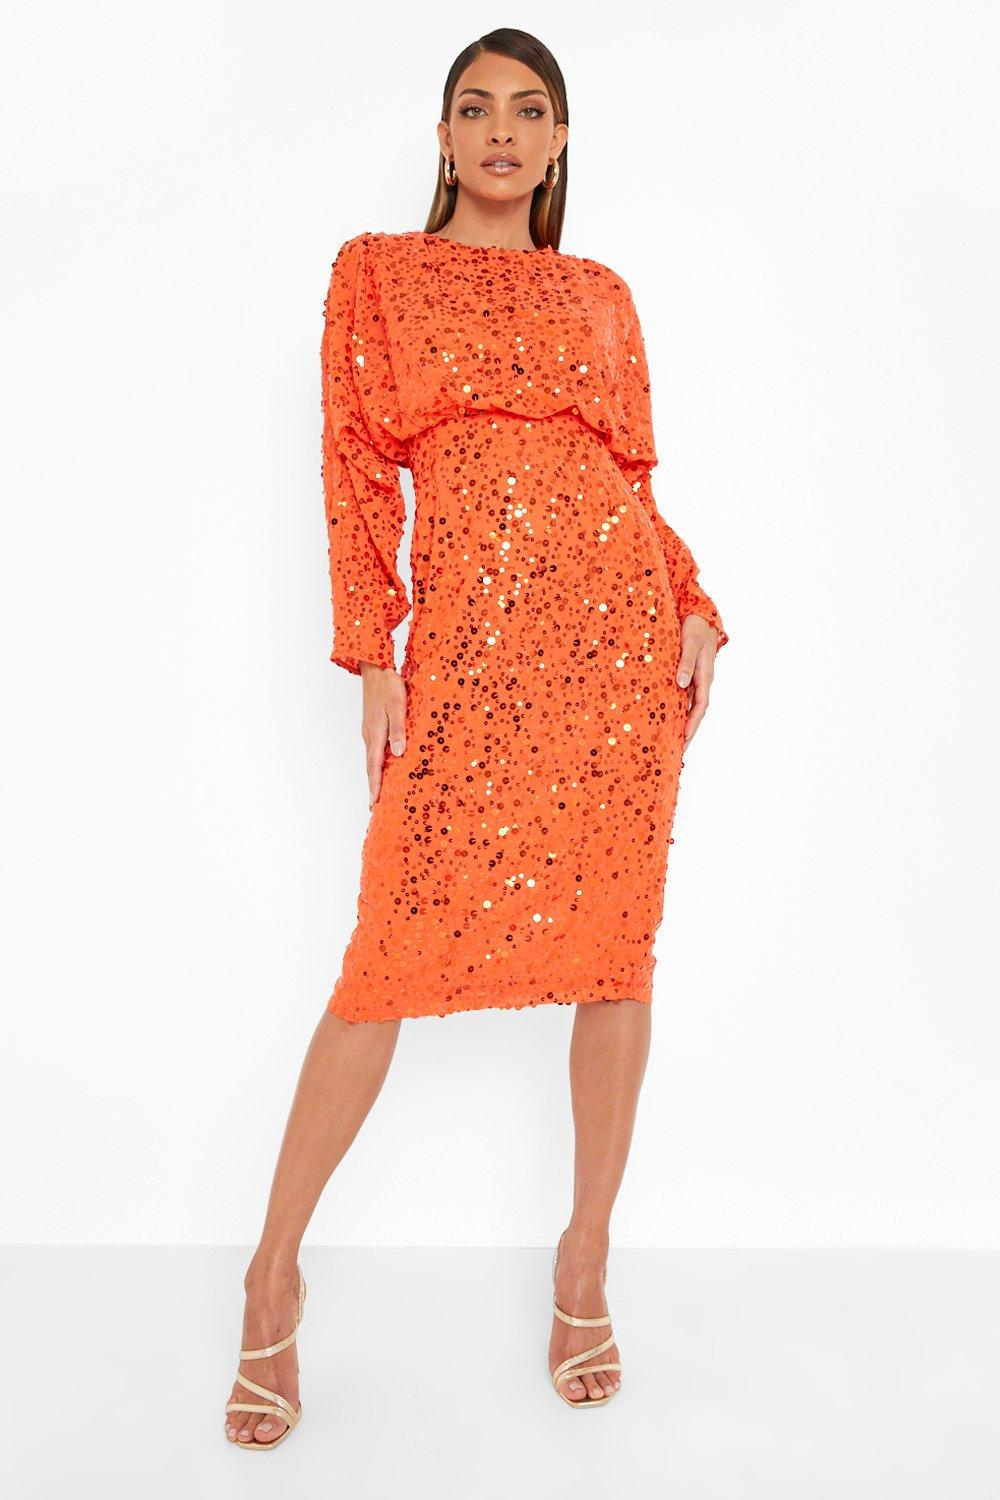 70s Disco Fashion: Disco Clothes, Outfits for Girls Womens Sequin Batwing Midi Dress - Orange - 14 $40.00 AT vintagedancer.com